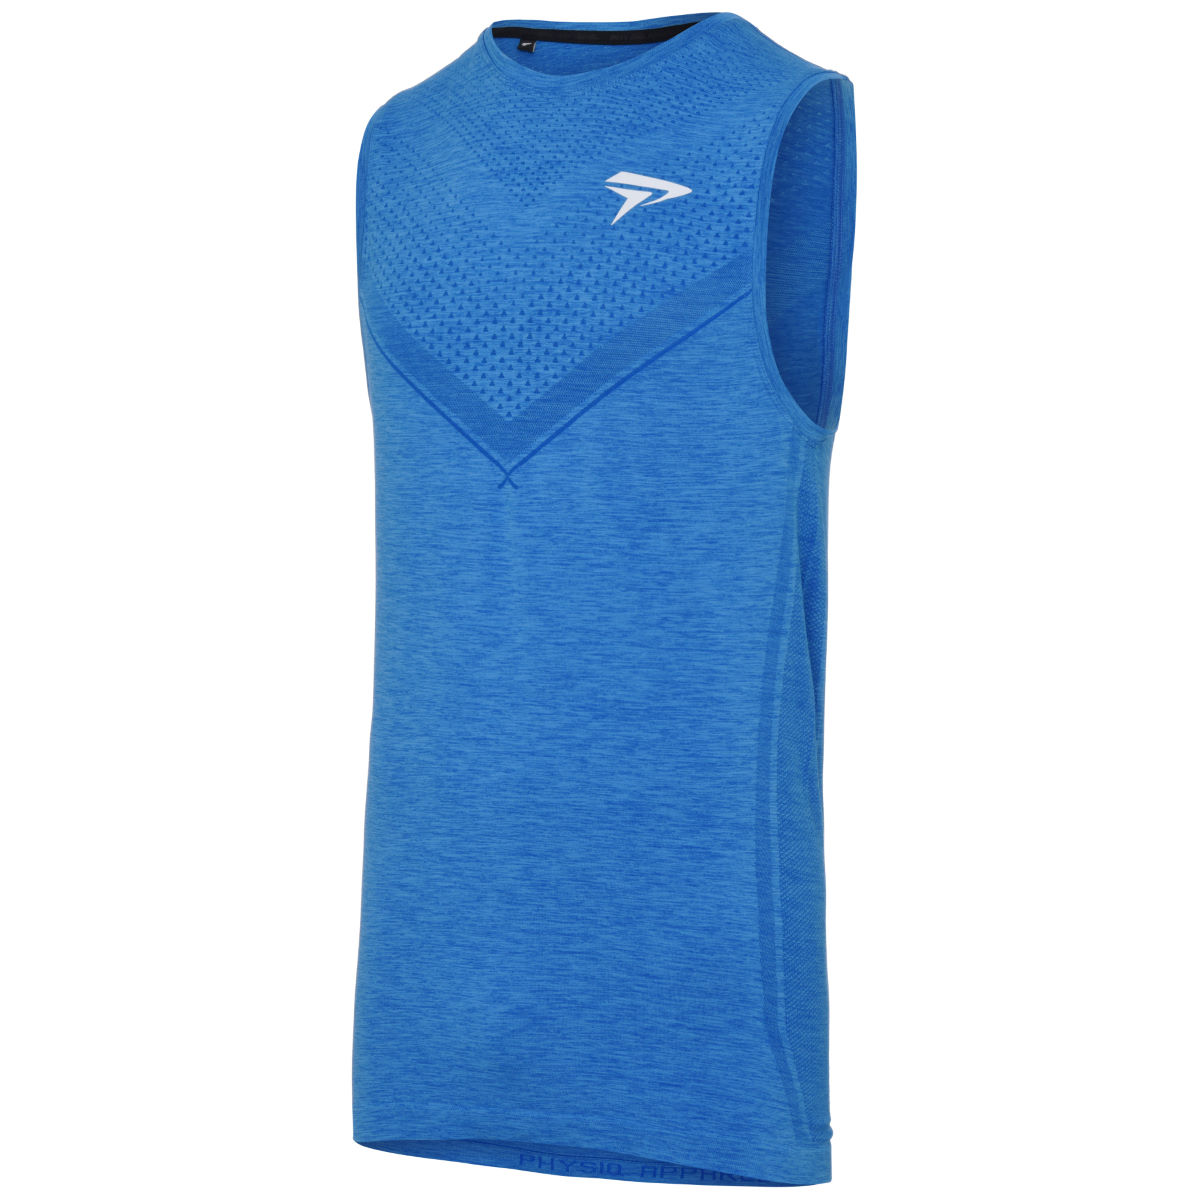 Physiq Apparel Ambition Seamless Sleeveless Tshirt - Camisetas sin mangas para running